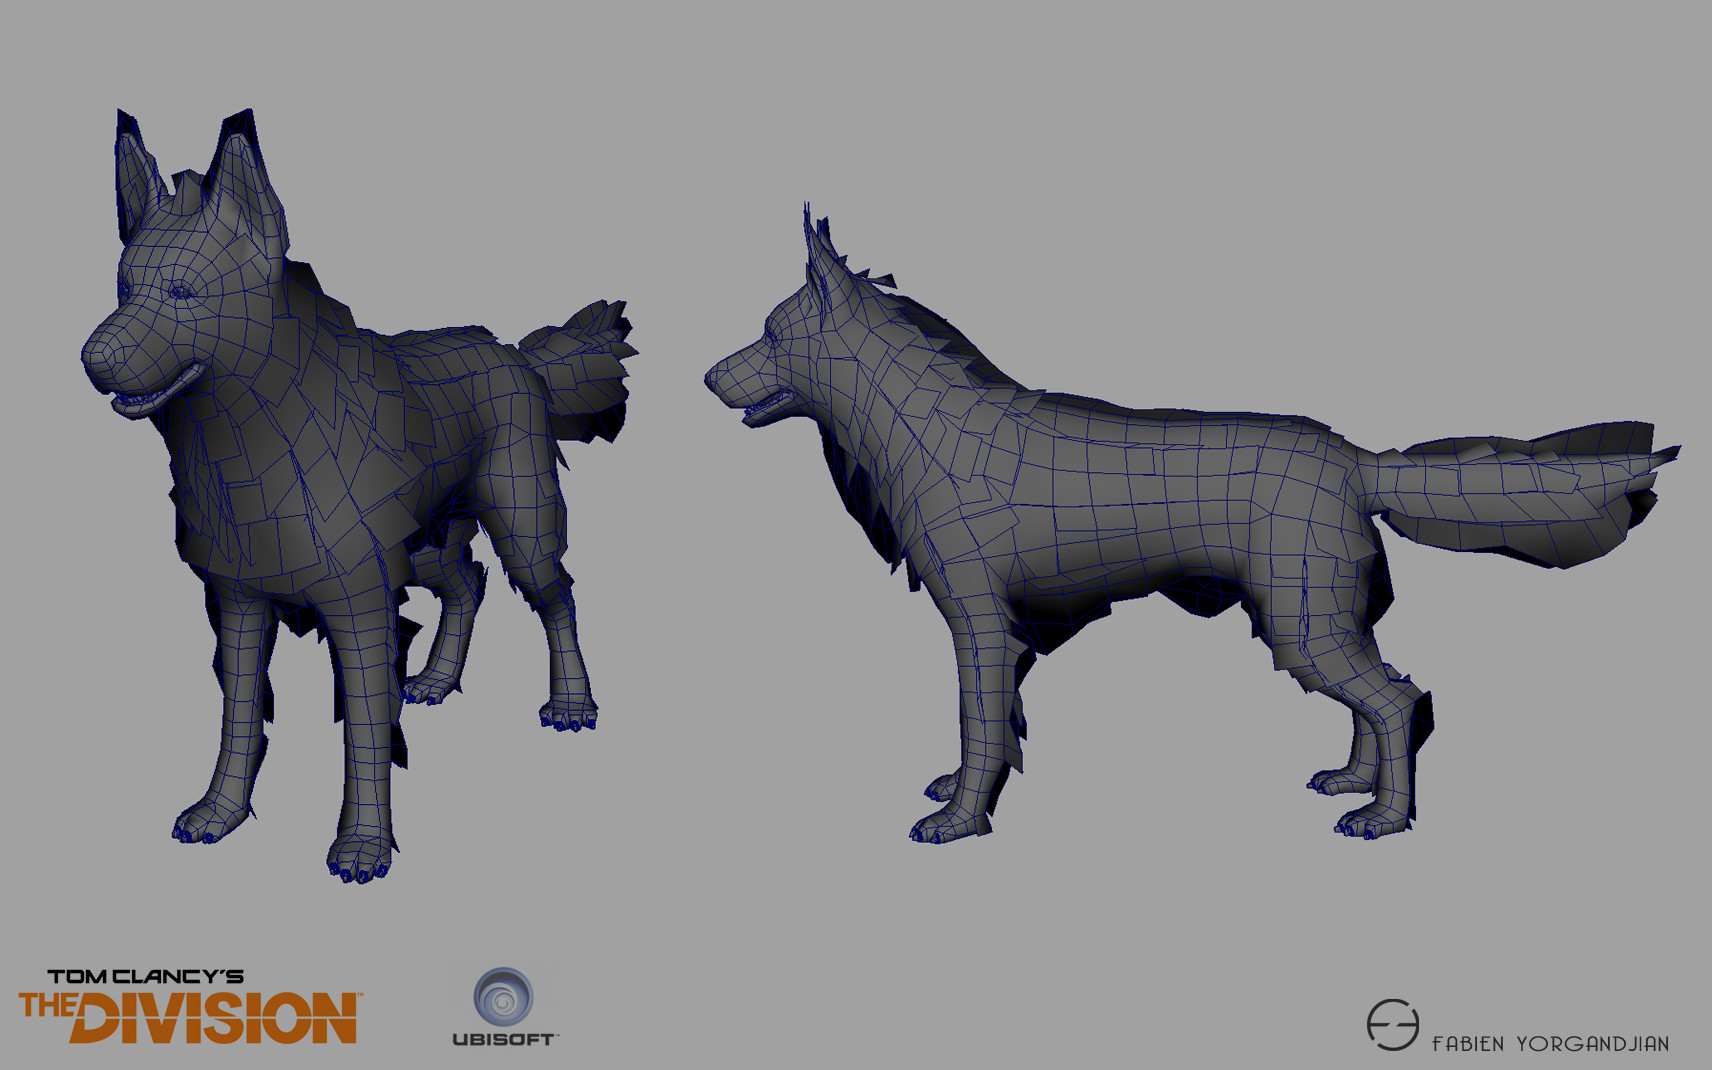 Fabien yorgandjian the division dog03 ingame